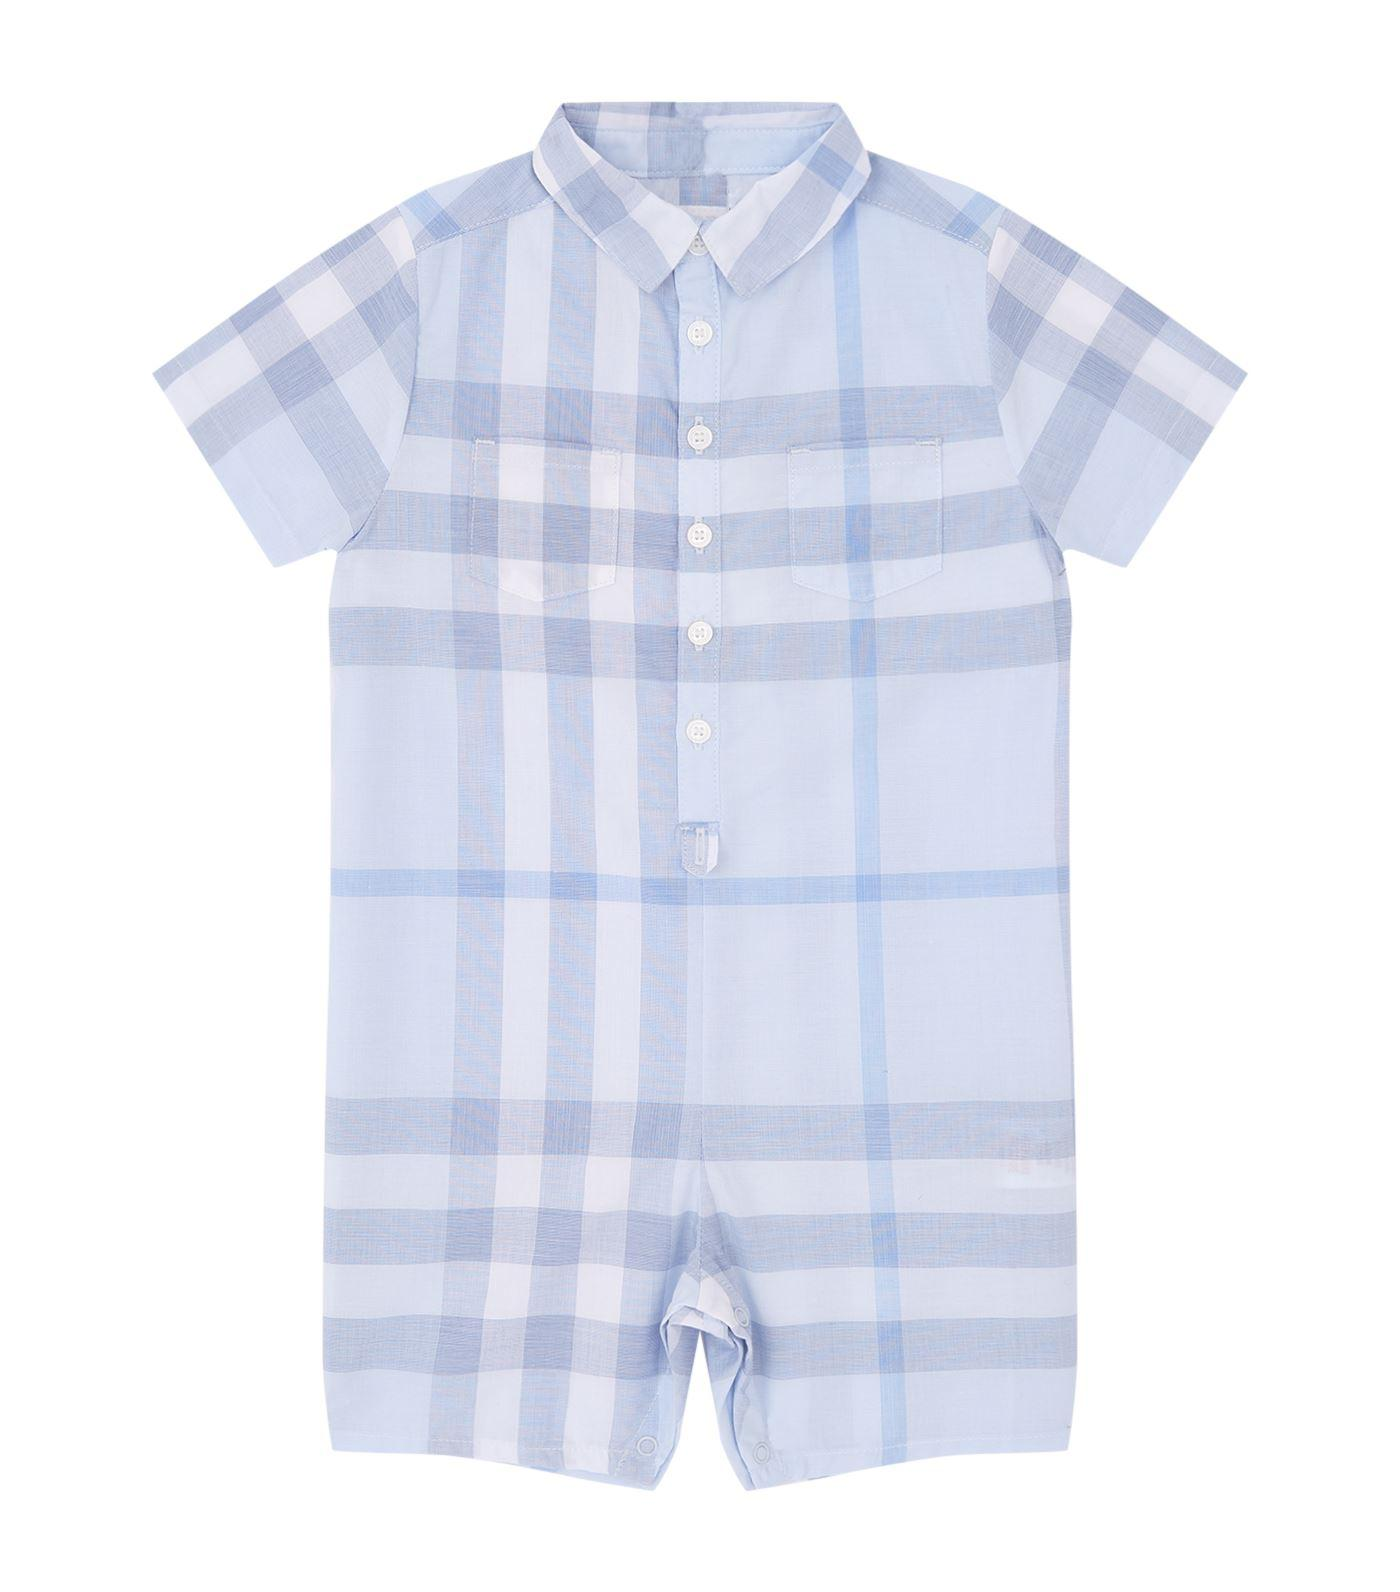 Burberry London Check Babygrow 6 Months - 3 Years In Blue